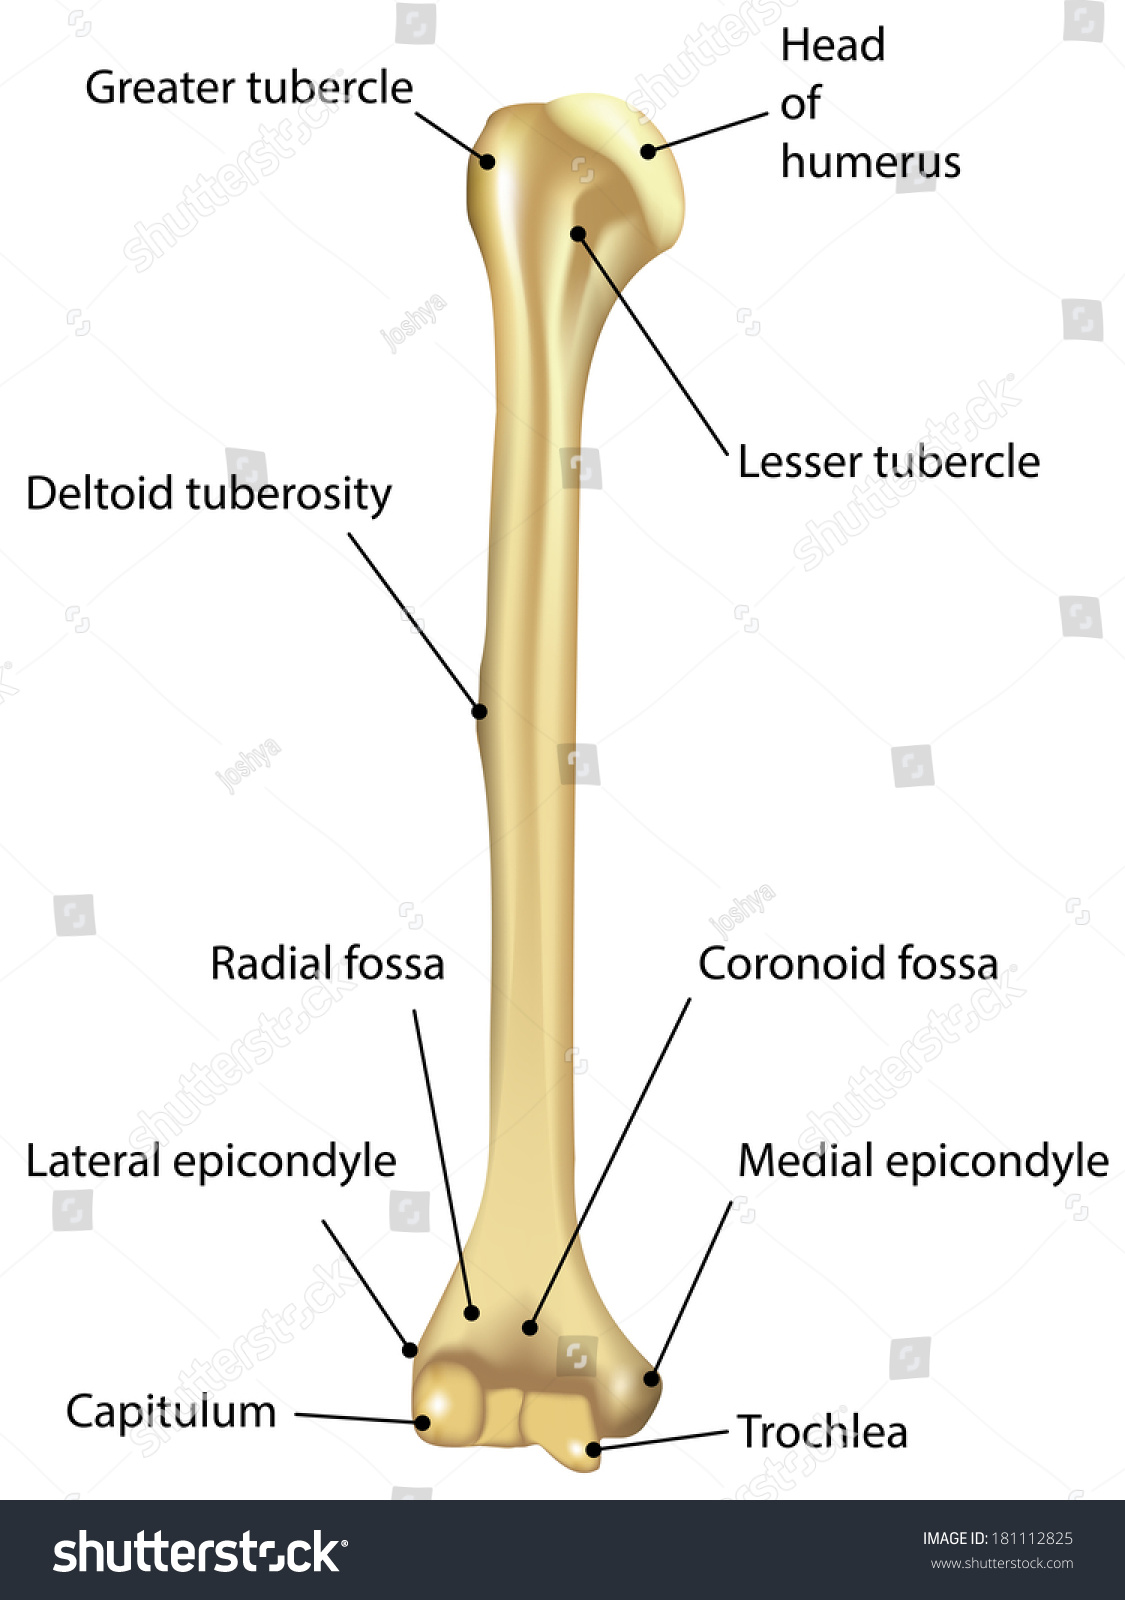 Humerus Labeled Diagram Stock Illustration